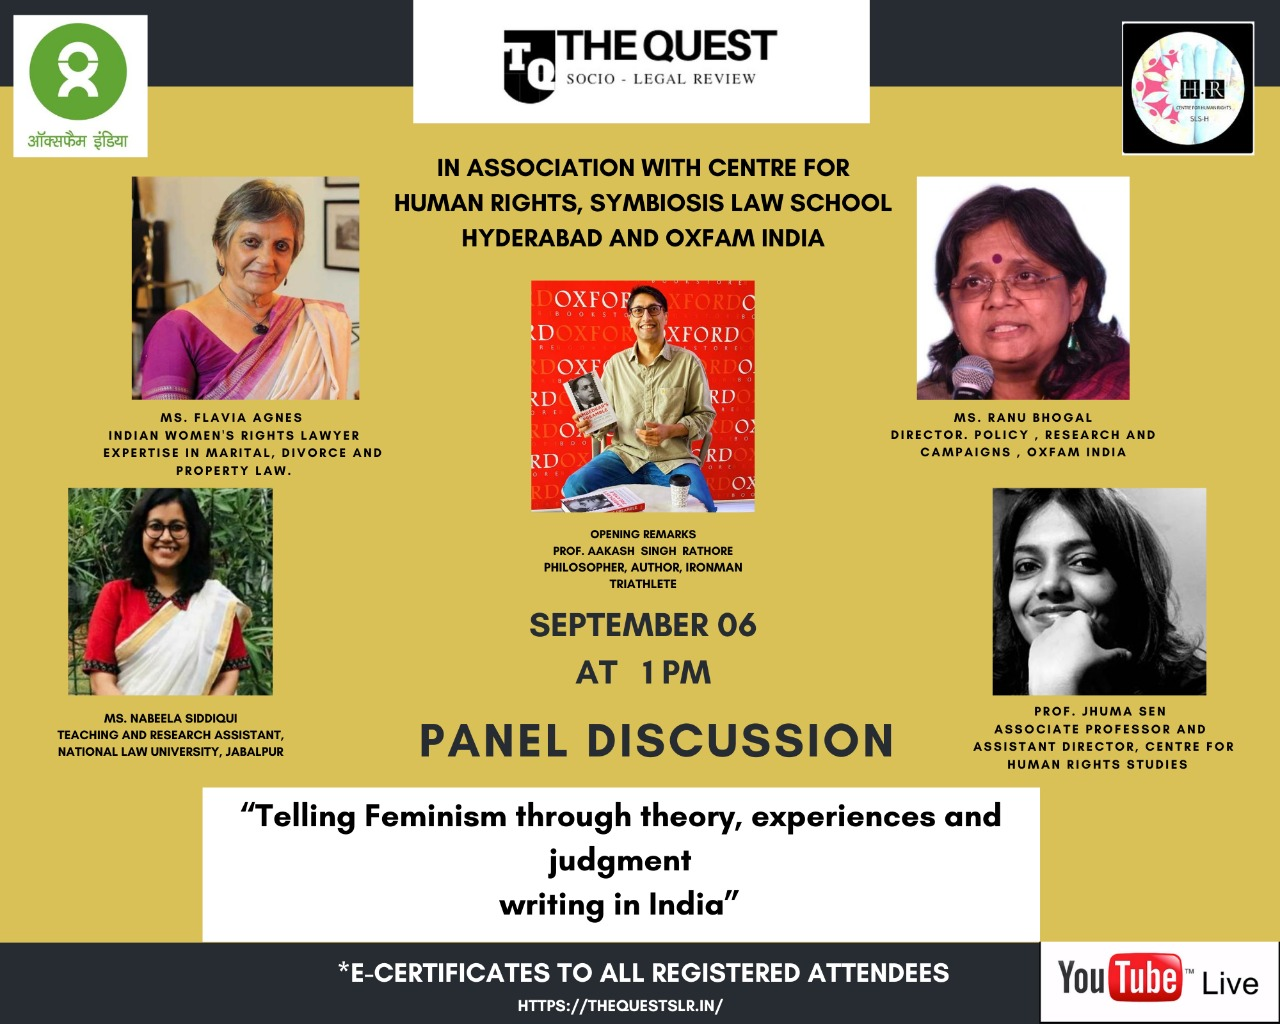 Quest-OXFAM-SLS Panel Discussion: Feminism [6th September]